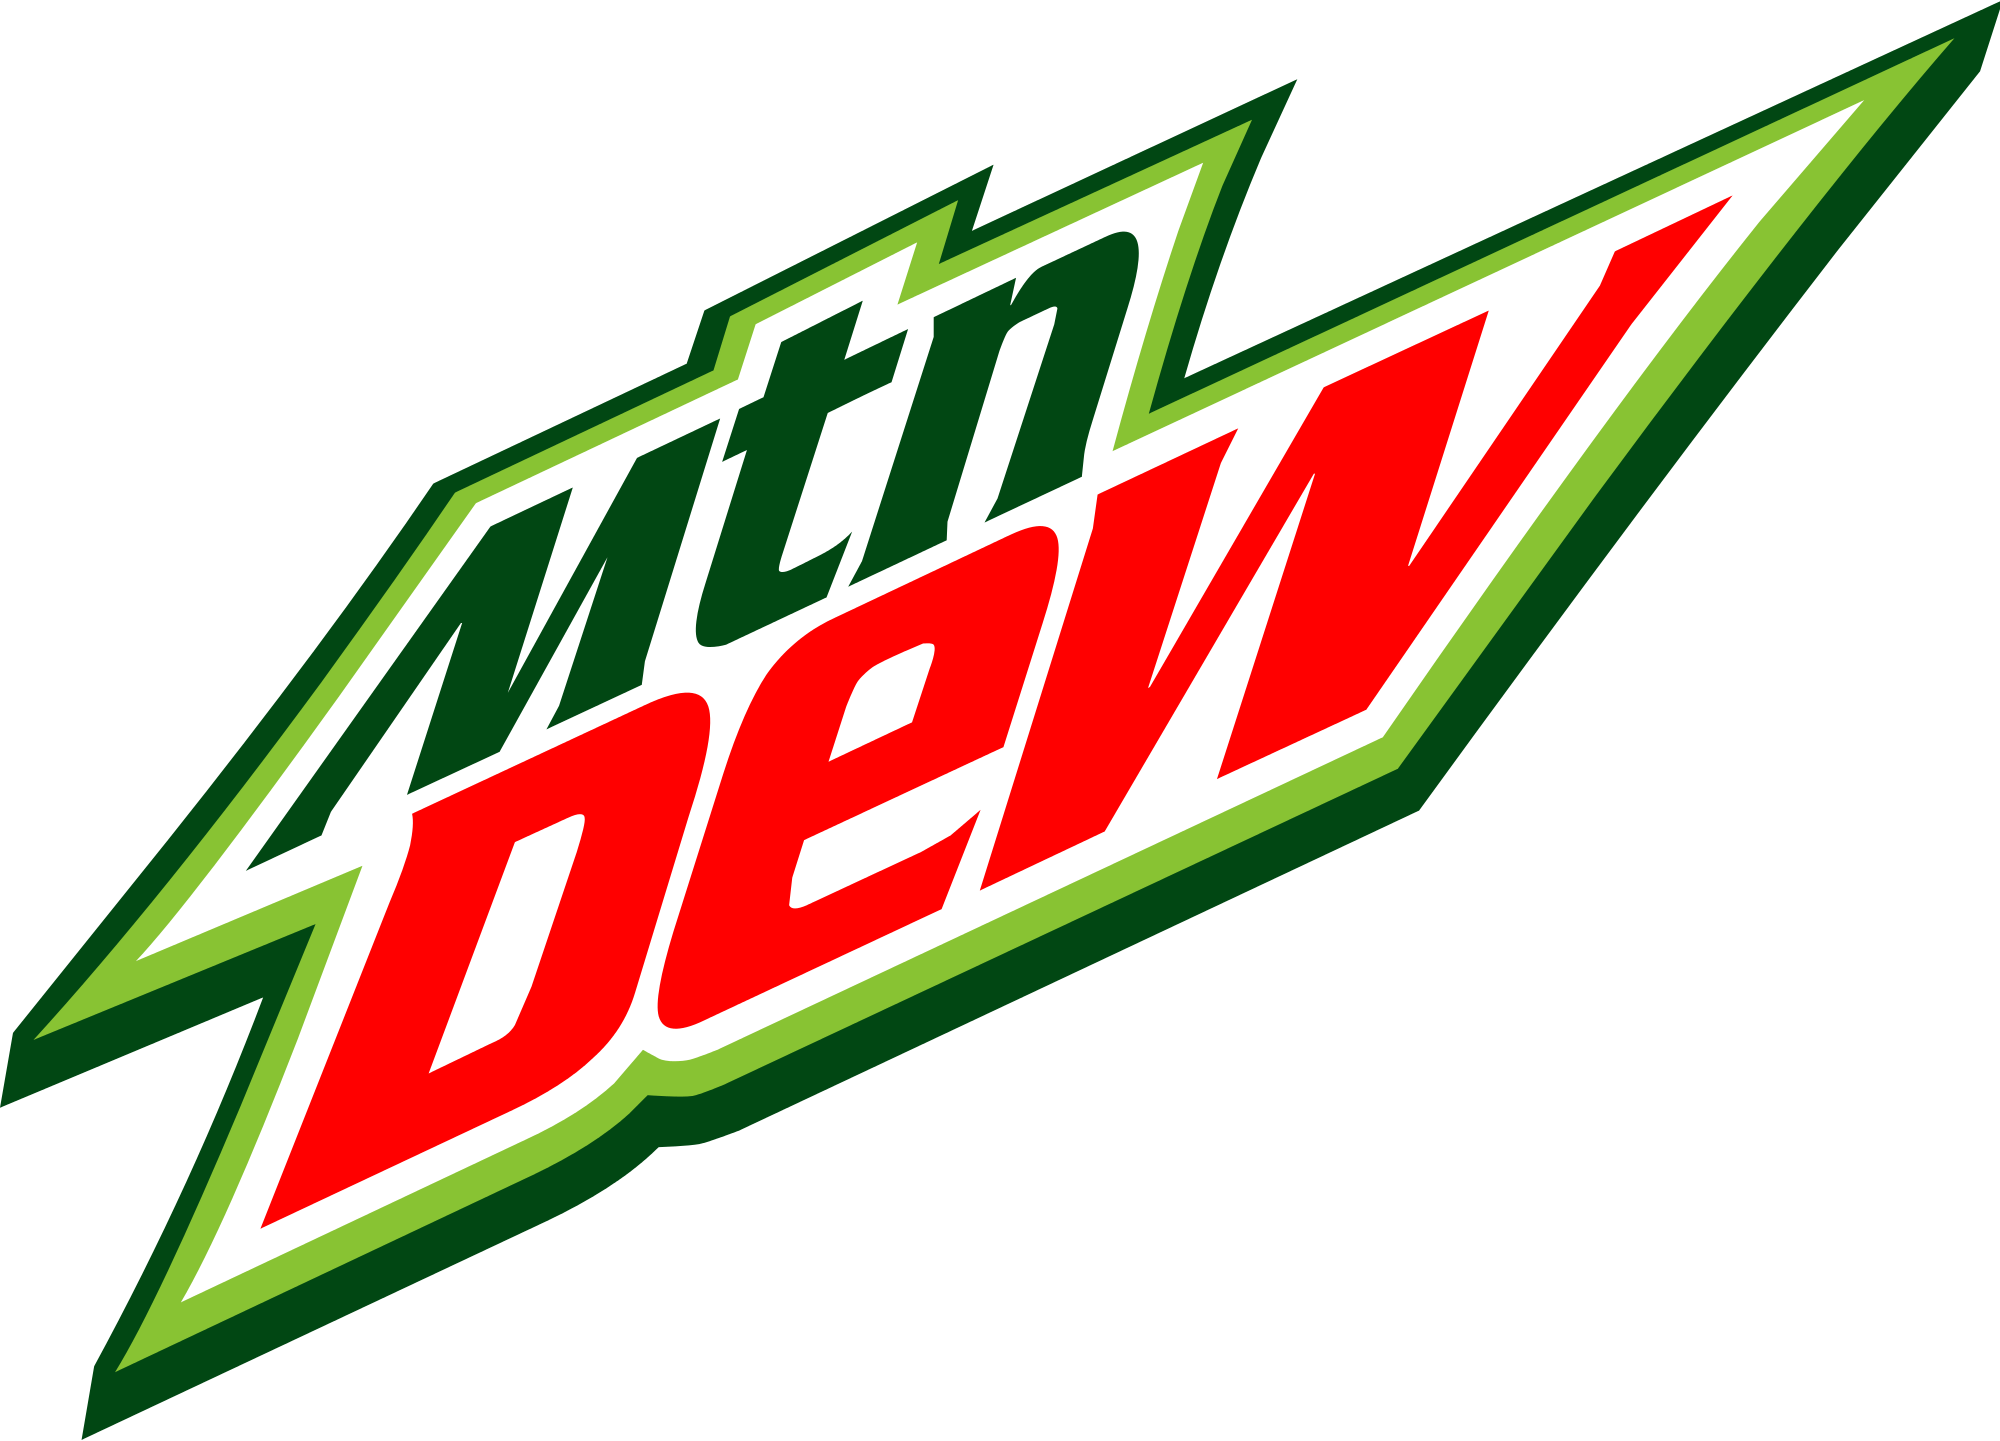 Image mtndew my own. Mlg png image transparent stock